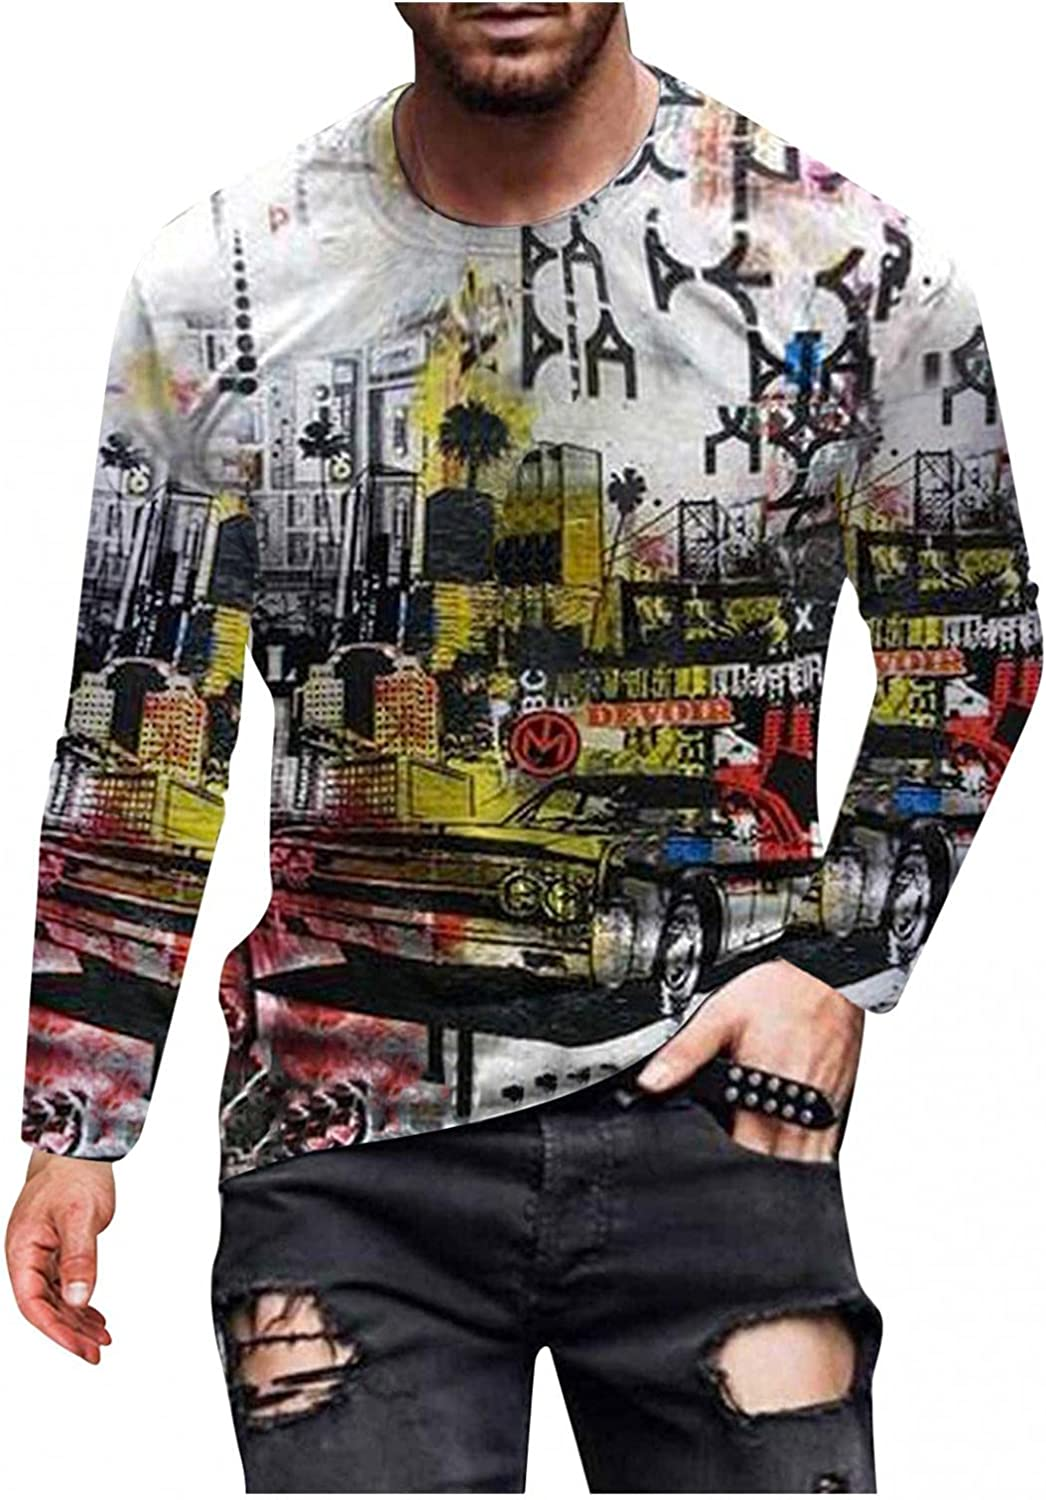 Men's Long Sleeve T Shirts Casual Slim Fit Lightweight Tops Muscle Shirts Graphic Vintage 3D Prints Tee